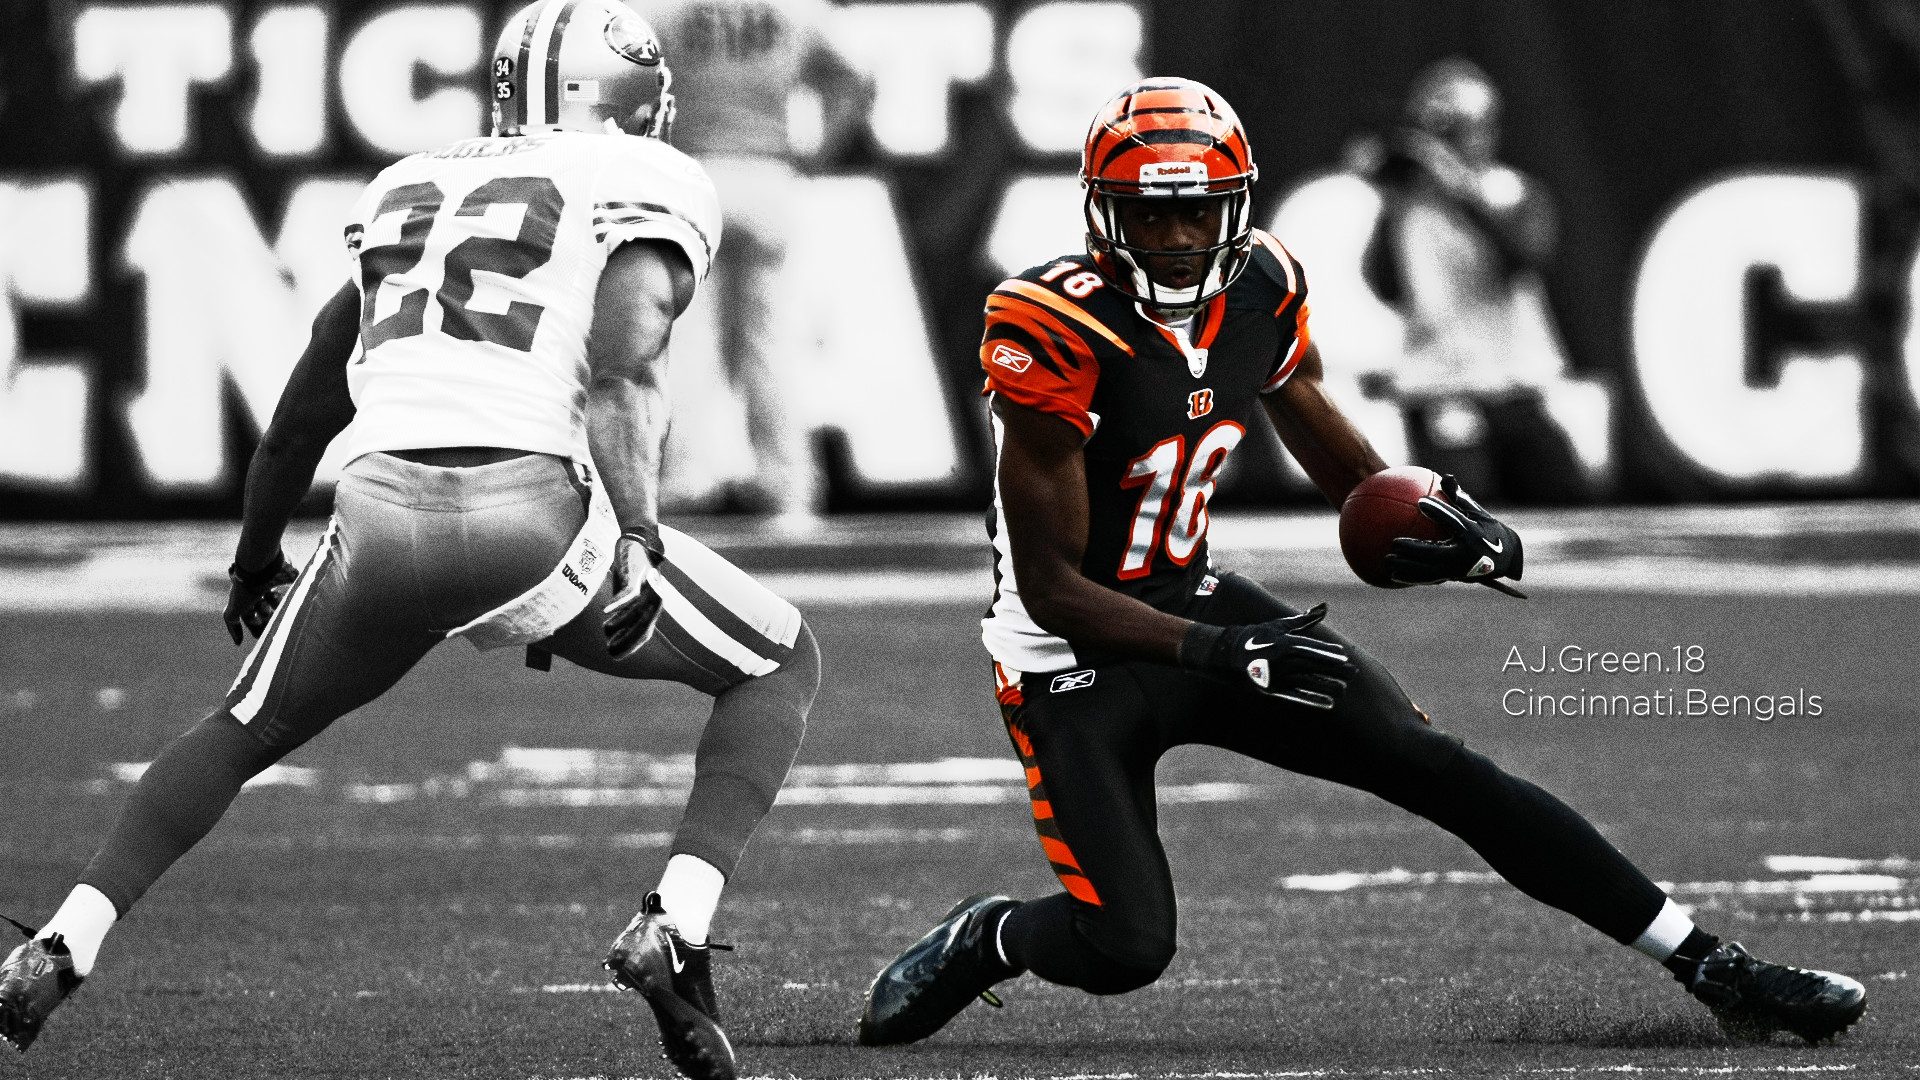 1920x1080 football americain wallpaper american football nfl selective coloring san  francisco 49ers cincinnati bengals aj green 49ers hd wallpapers